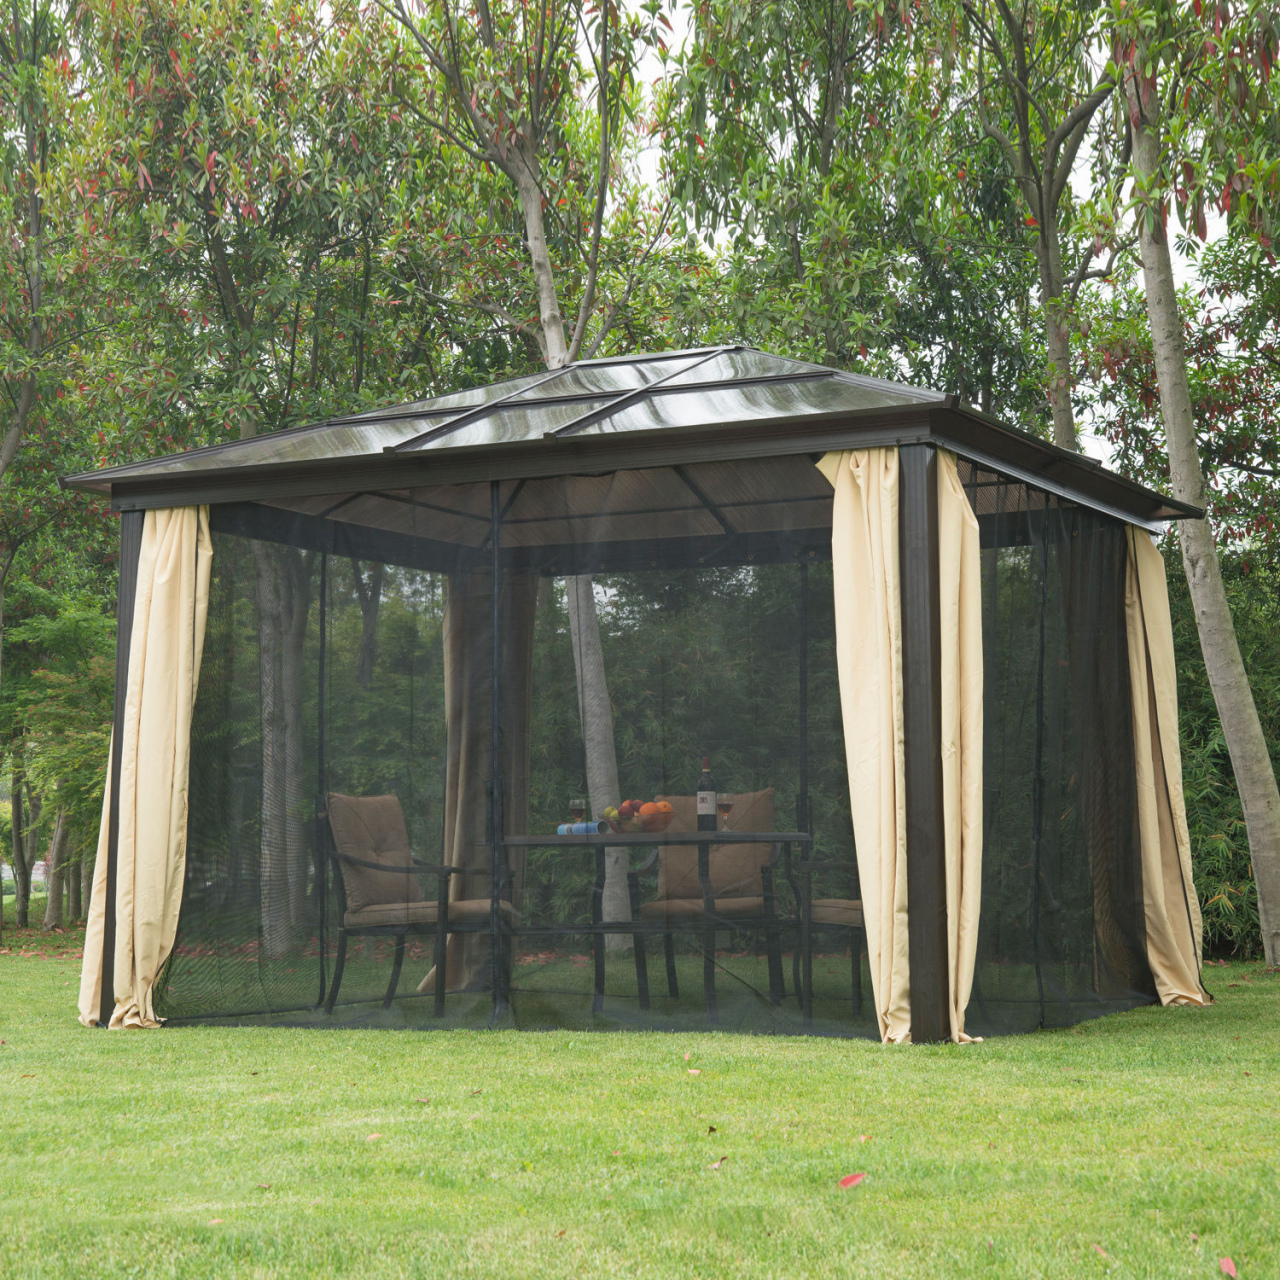 build your own gazebo awesome outdoor gazebo curtains freephotoprinting home outdoor durch build your own gazebo